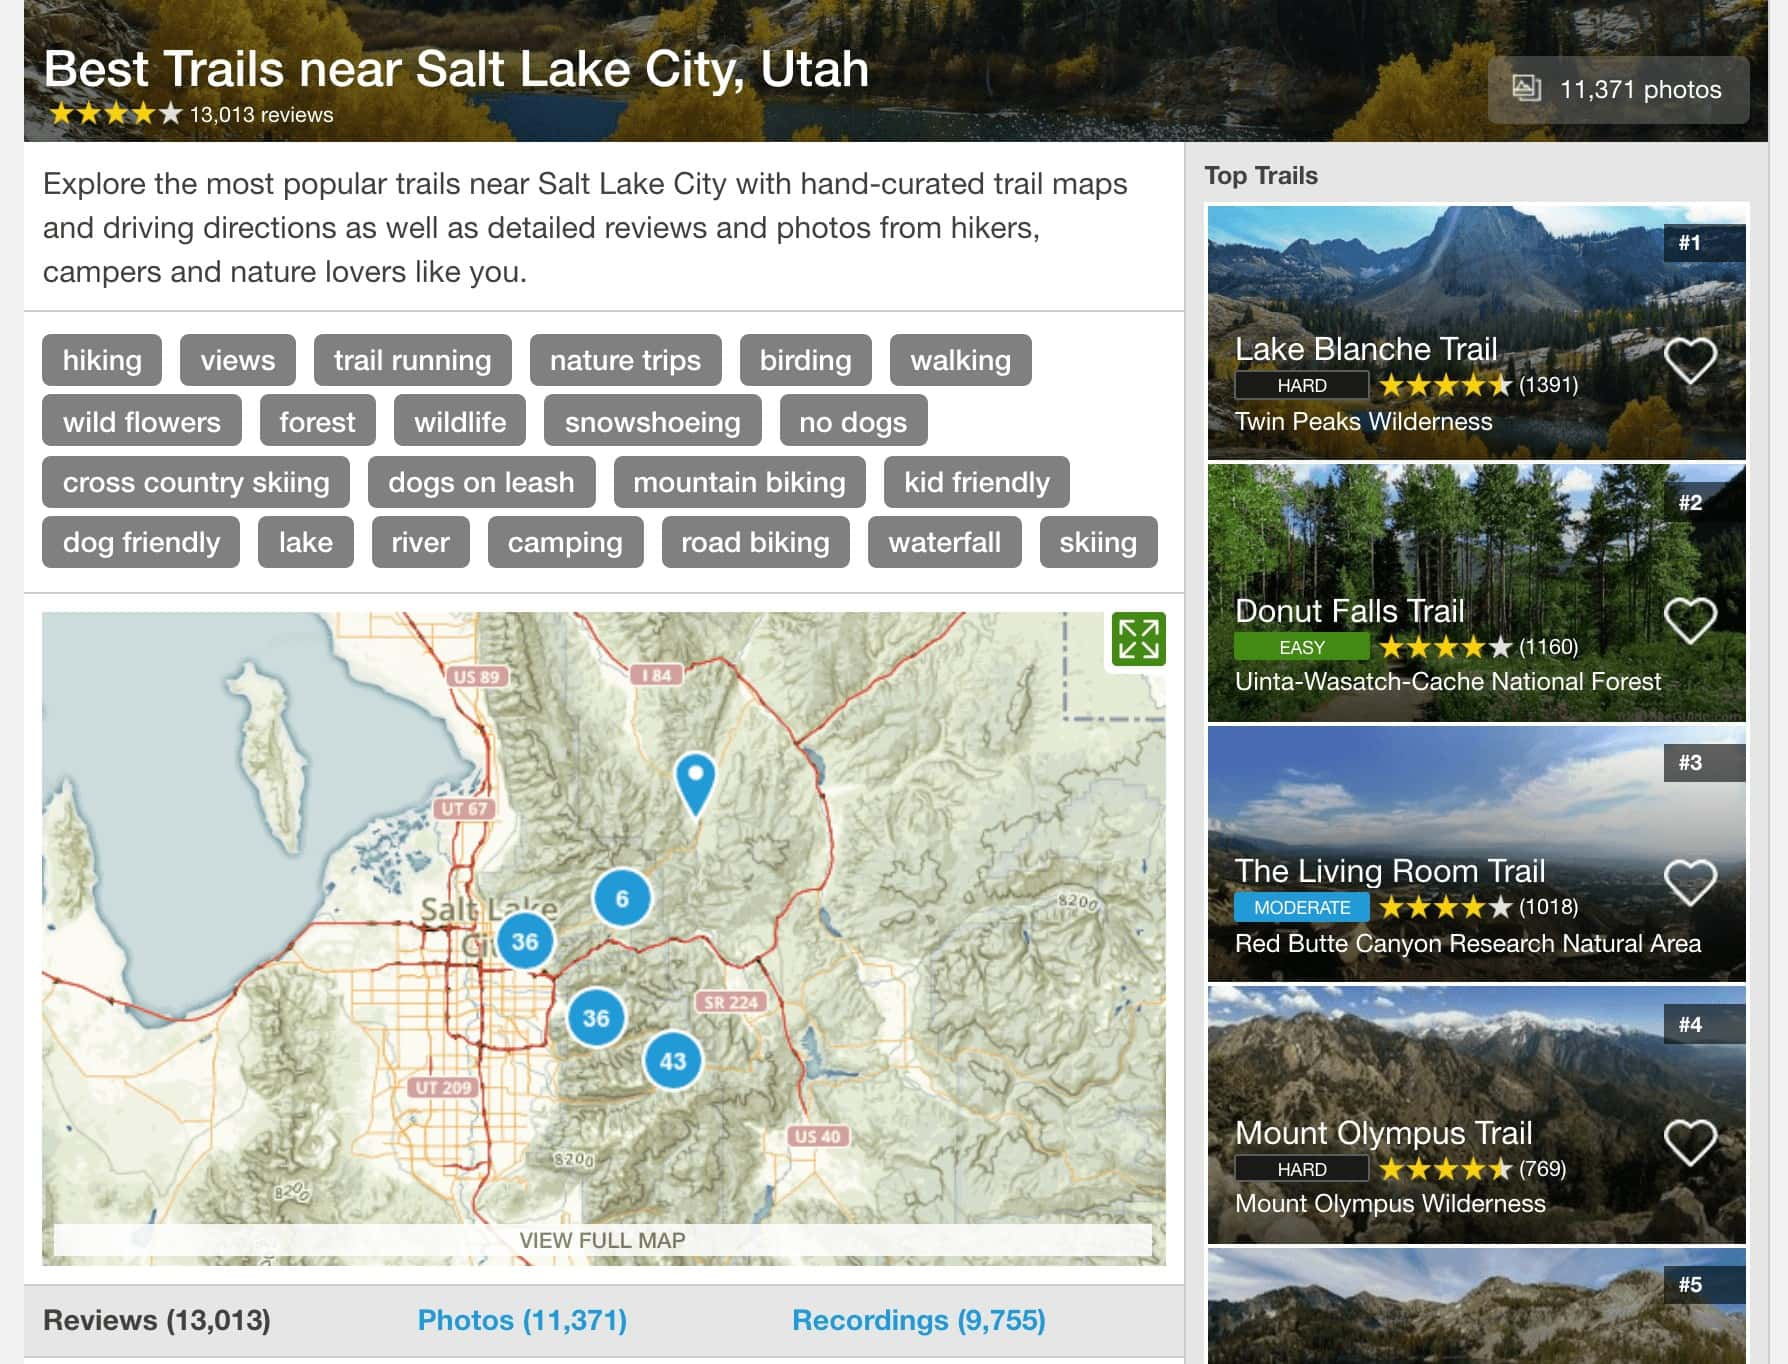 AllTrails / One of the best hiking apps and one of our favorite apps for finding local hiking trails